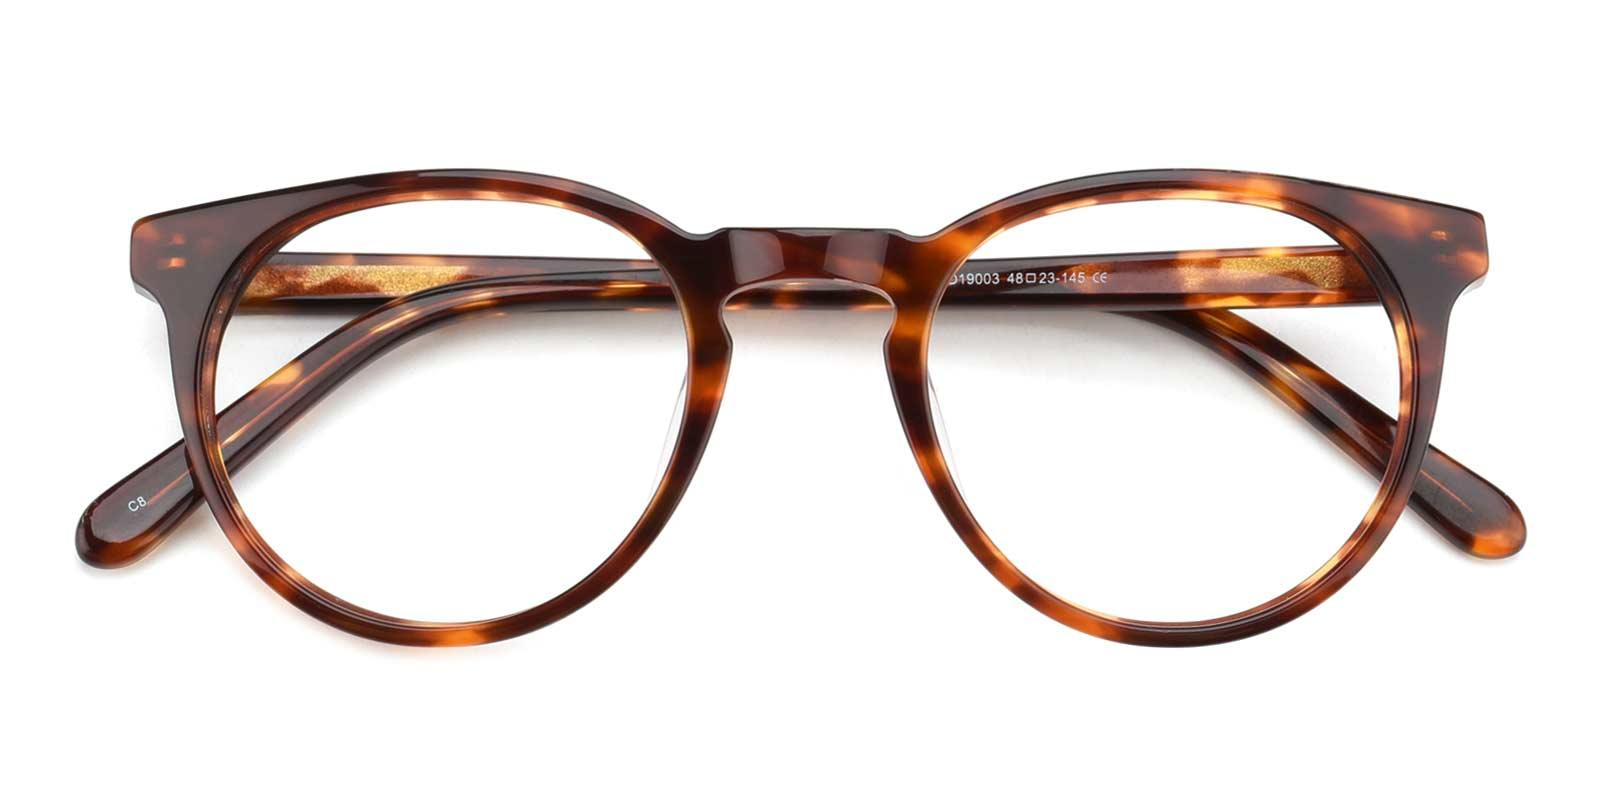 March-Tortoise-Round-Acetate-Eyeglasses-detail